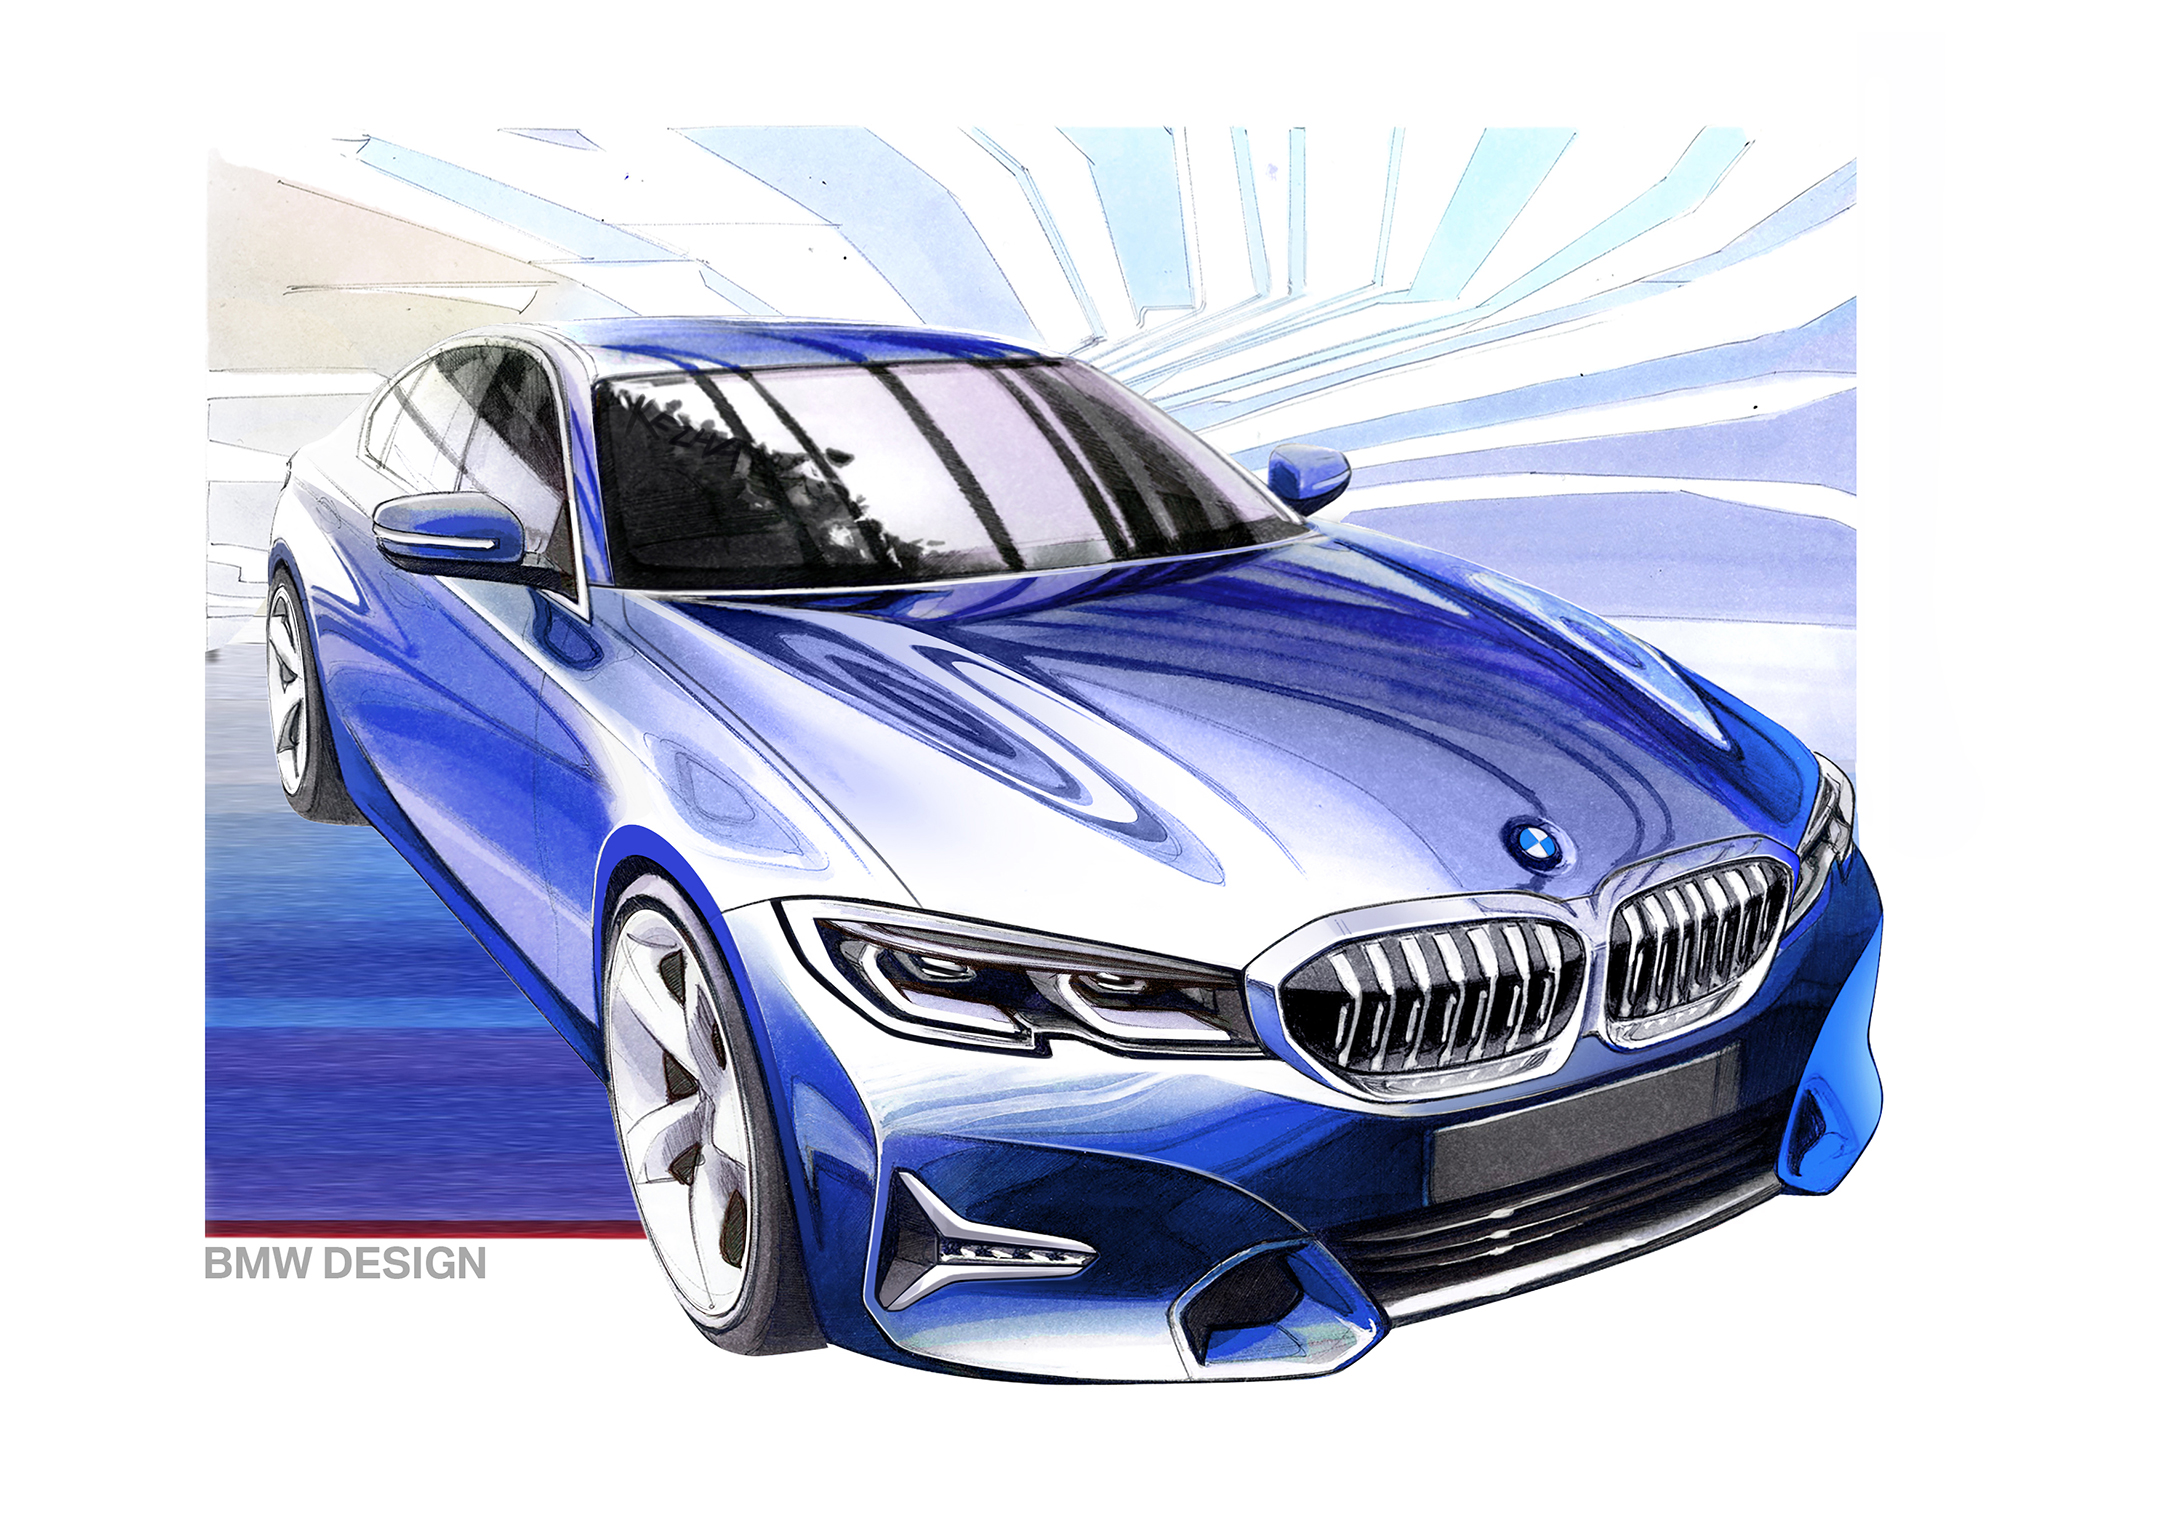 BMW Serie 3 Berline - 2018 - sketch design - front / avant